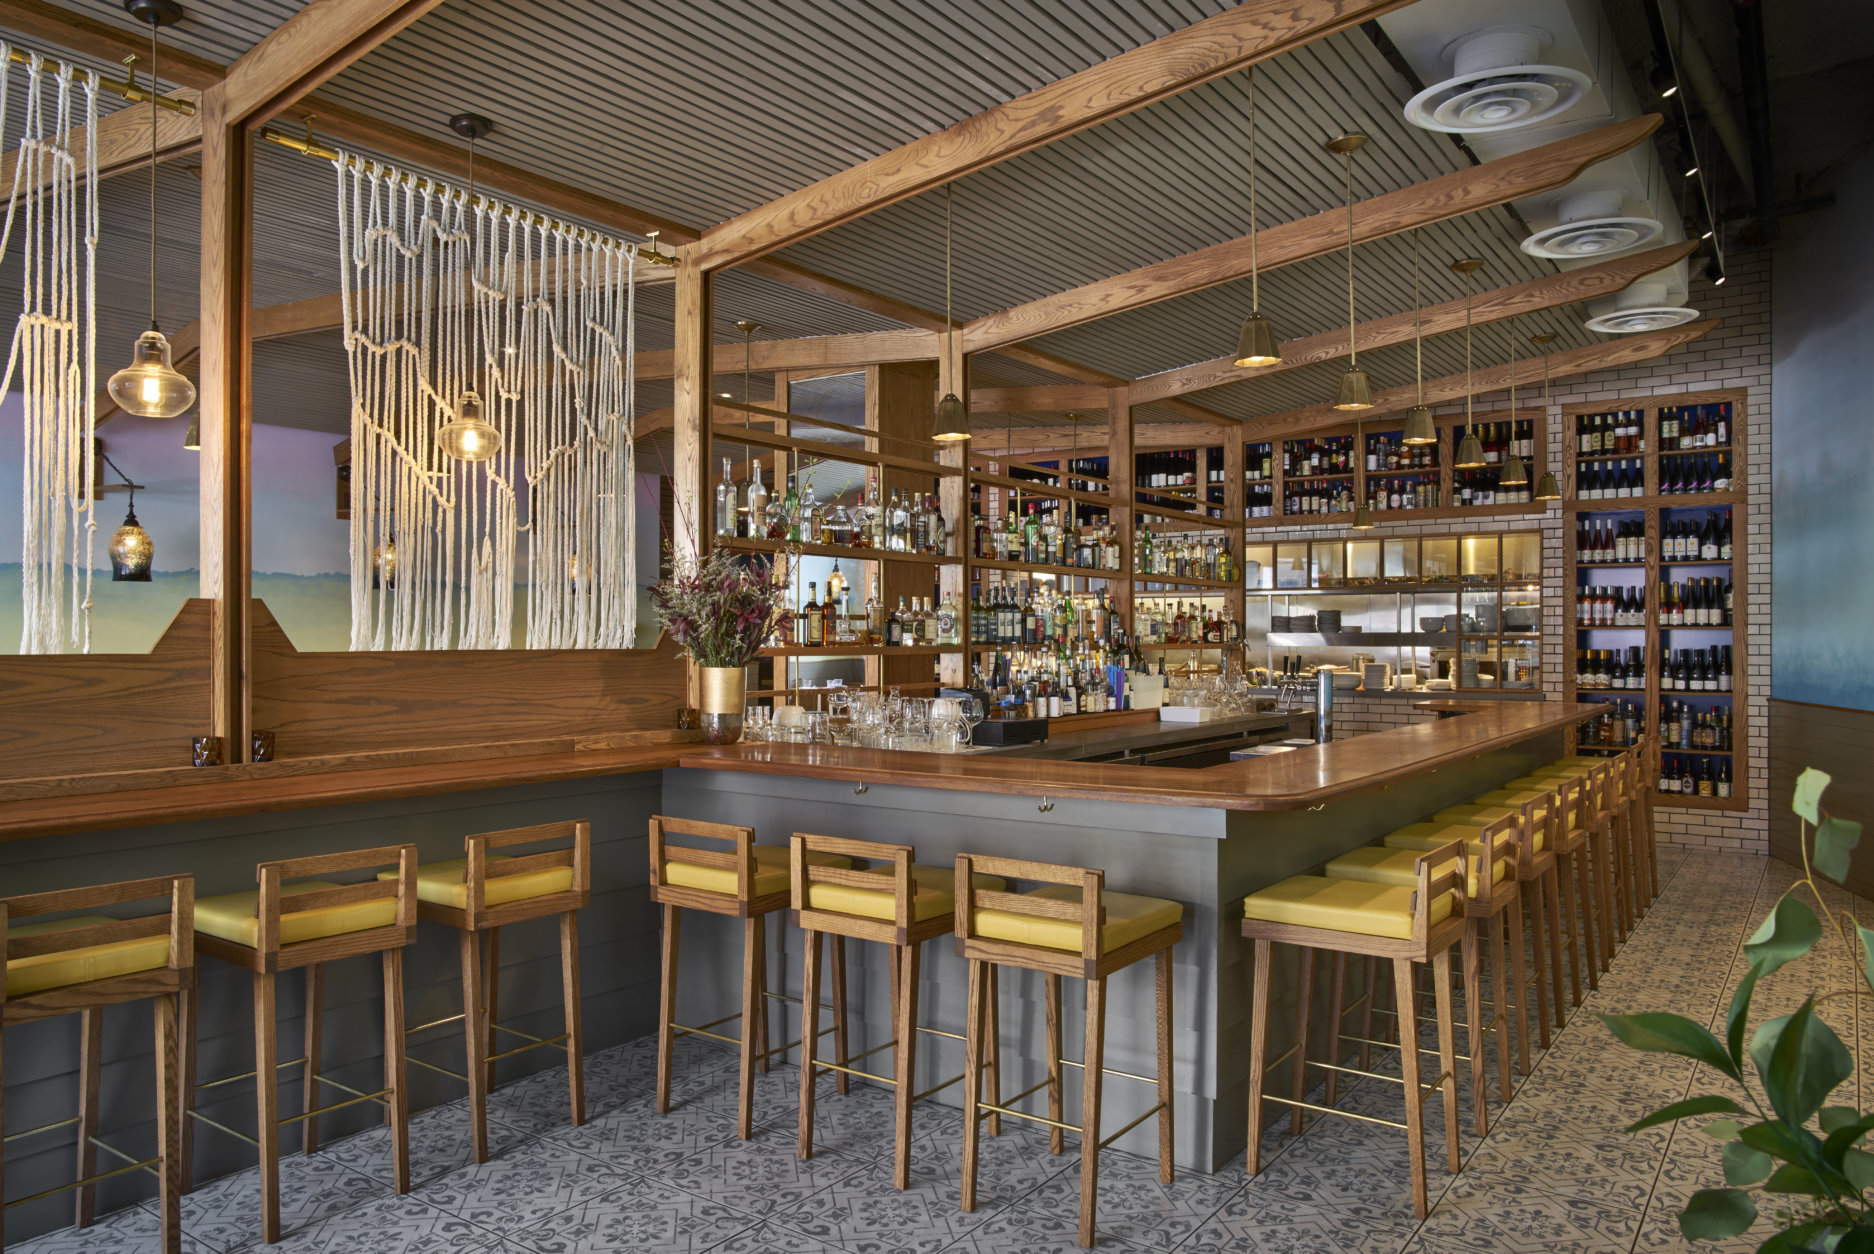 Streetsense's approach to Tail Up Goat (1827 Adams Mill Road NW) gives a nod to co-owner Jill Tyler's origins in the U.S. Virgin Islands. Cheery hues and seascape-inspired murals ensure a breezy ambience. (Courtesy Streetsense/Greg Powers)